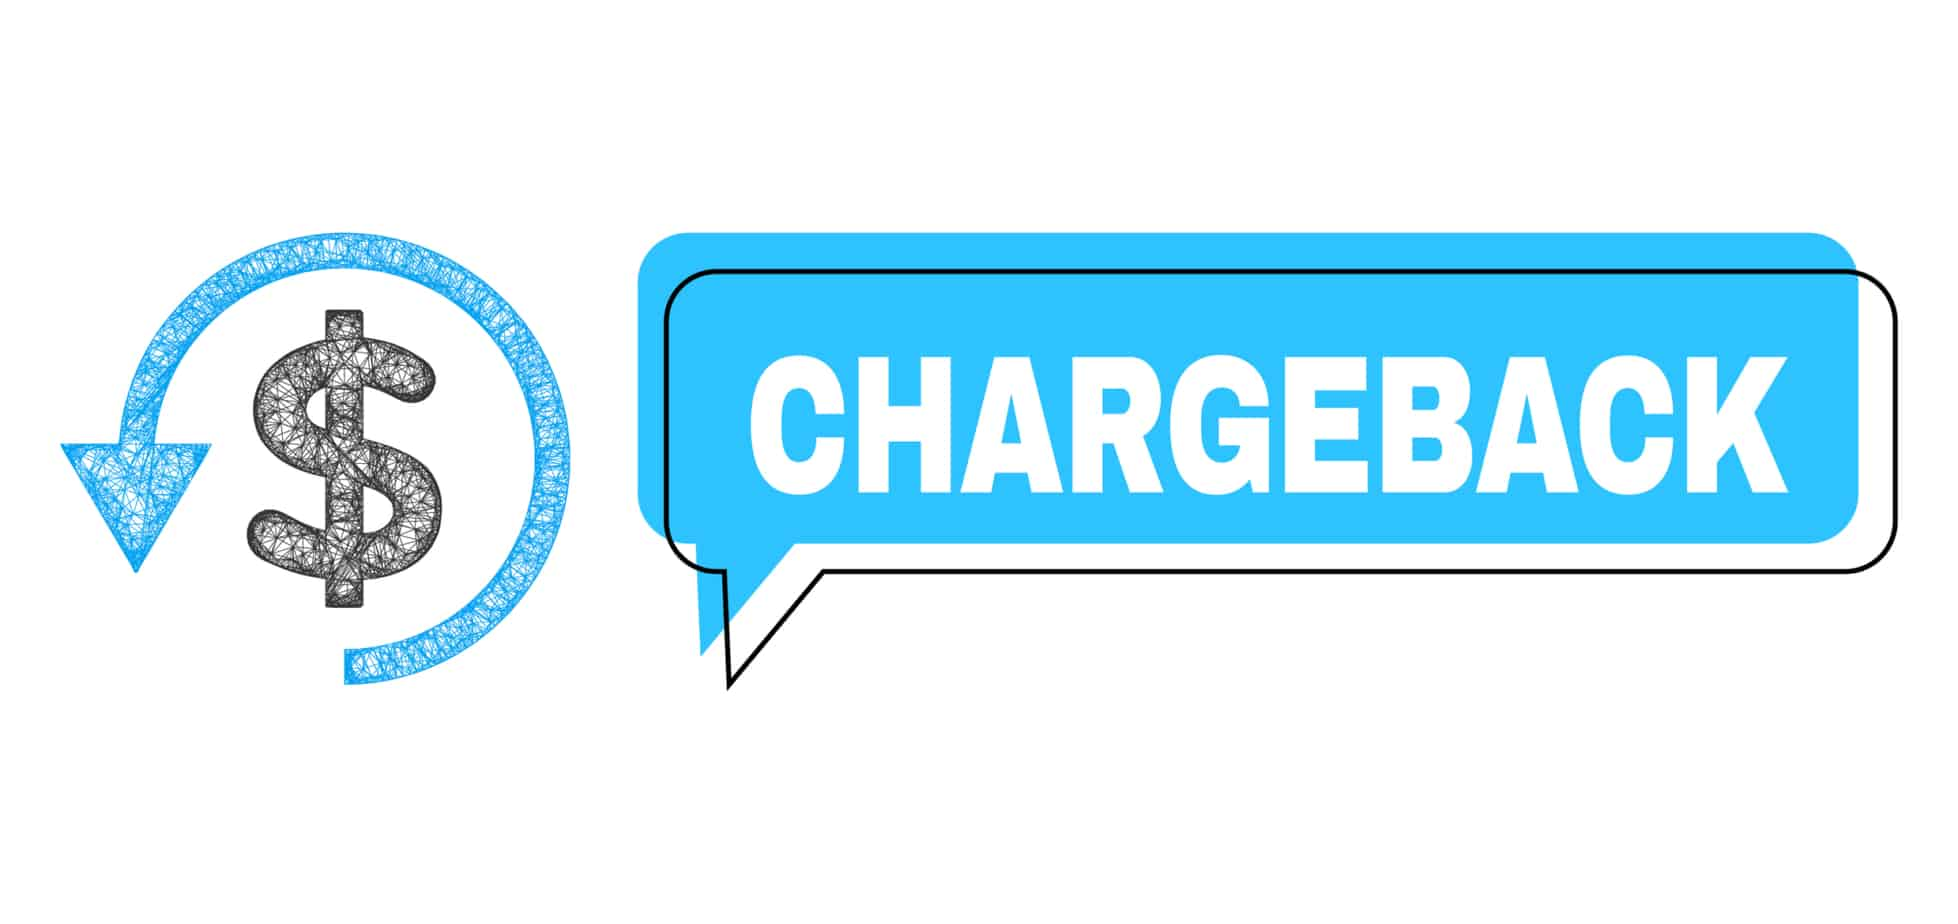 Misplaced Chargeback Chat Balloon And Net Mesh Chargeback Icon 205576513